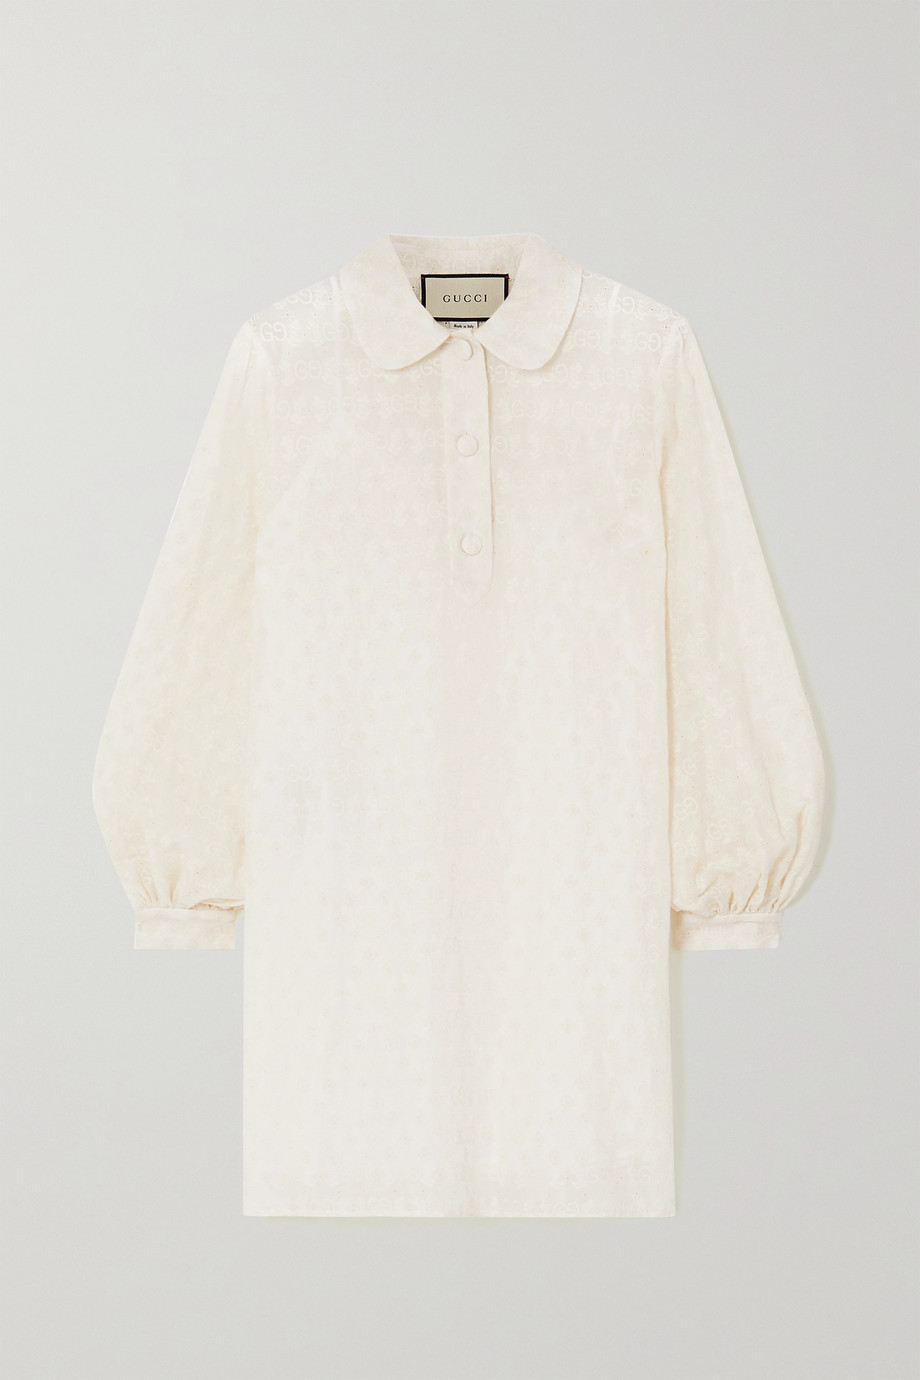 Gucci Embroidered cotton-blend jacquard shirt